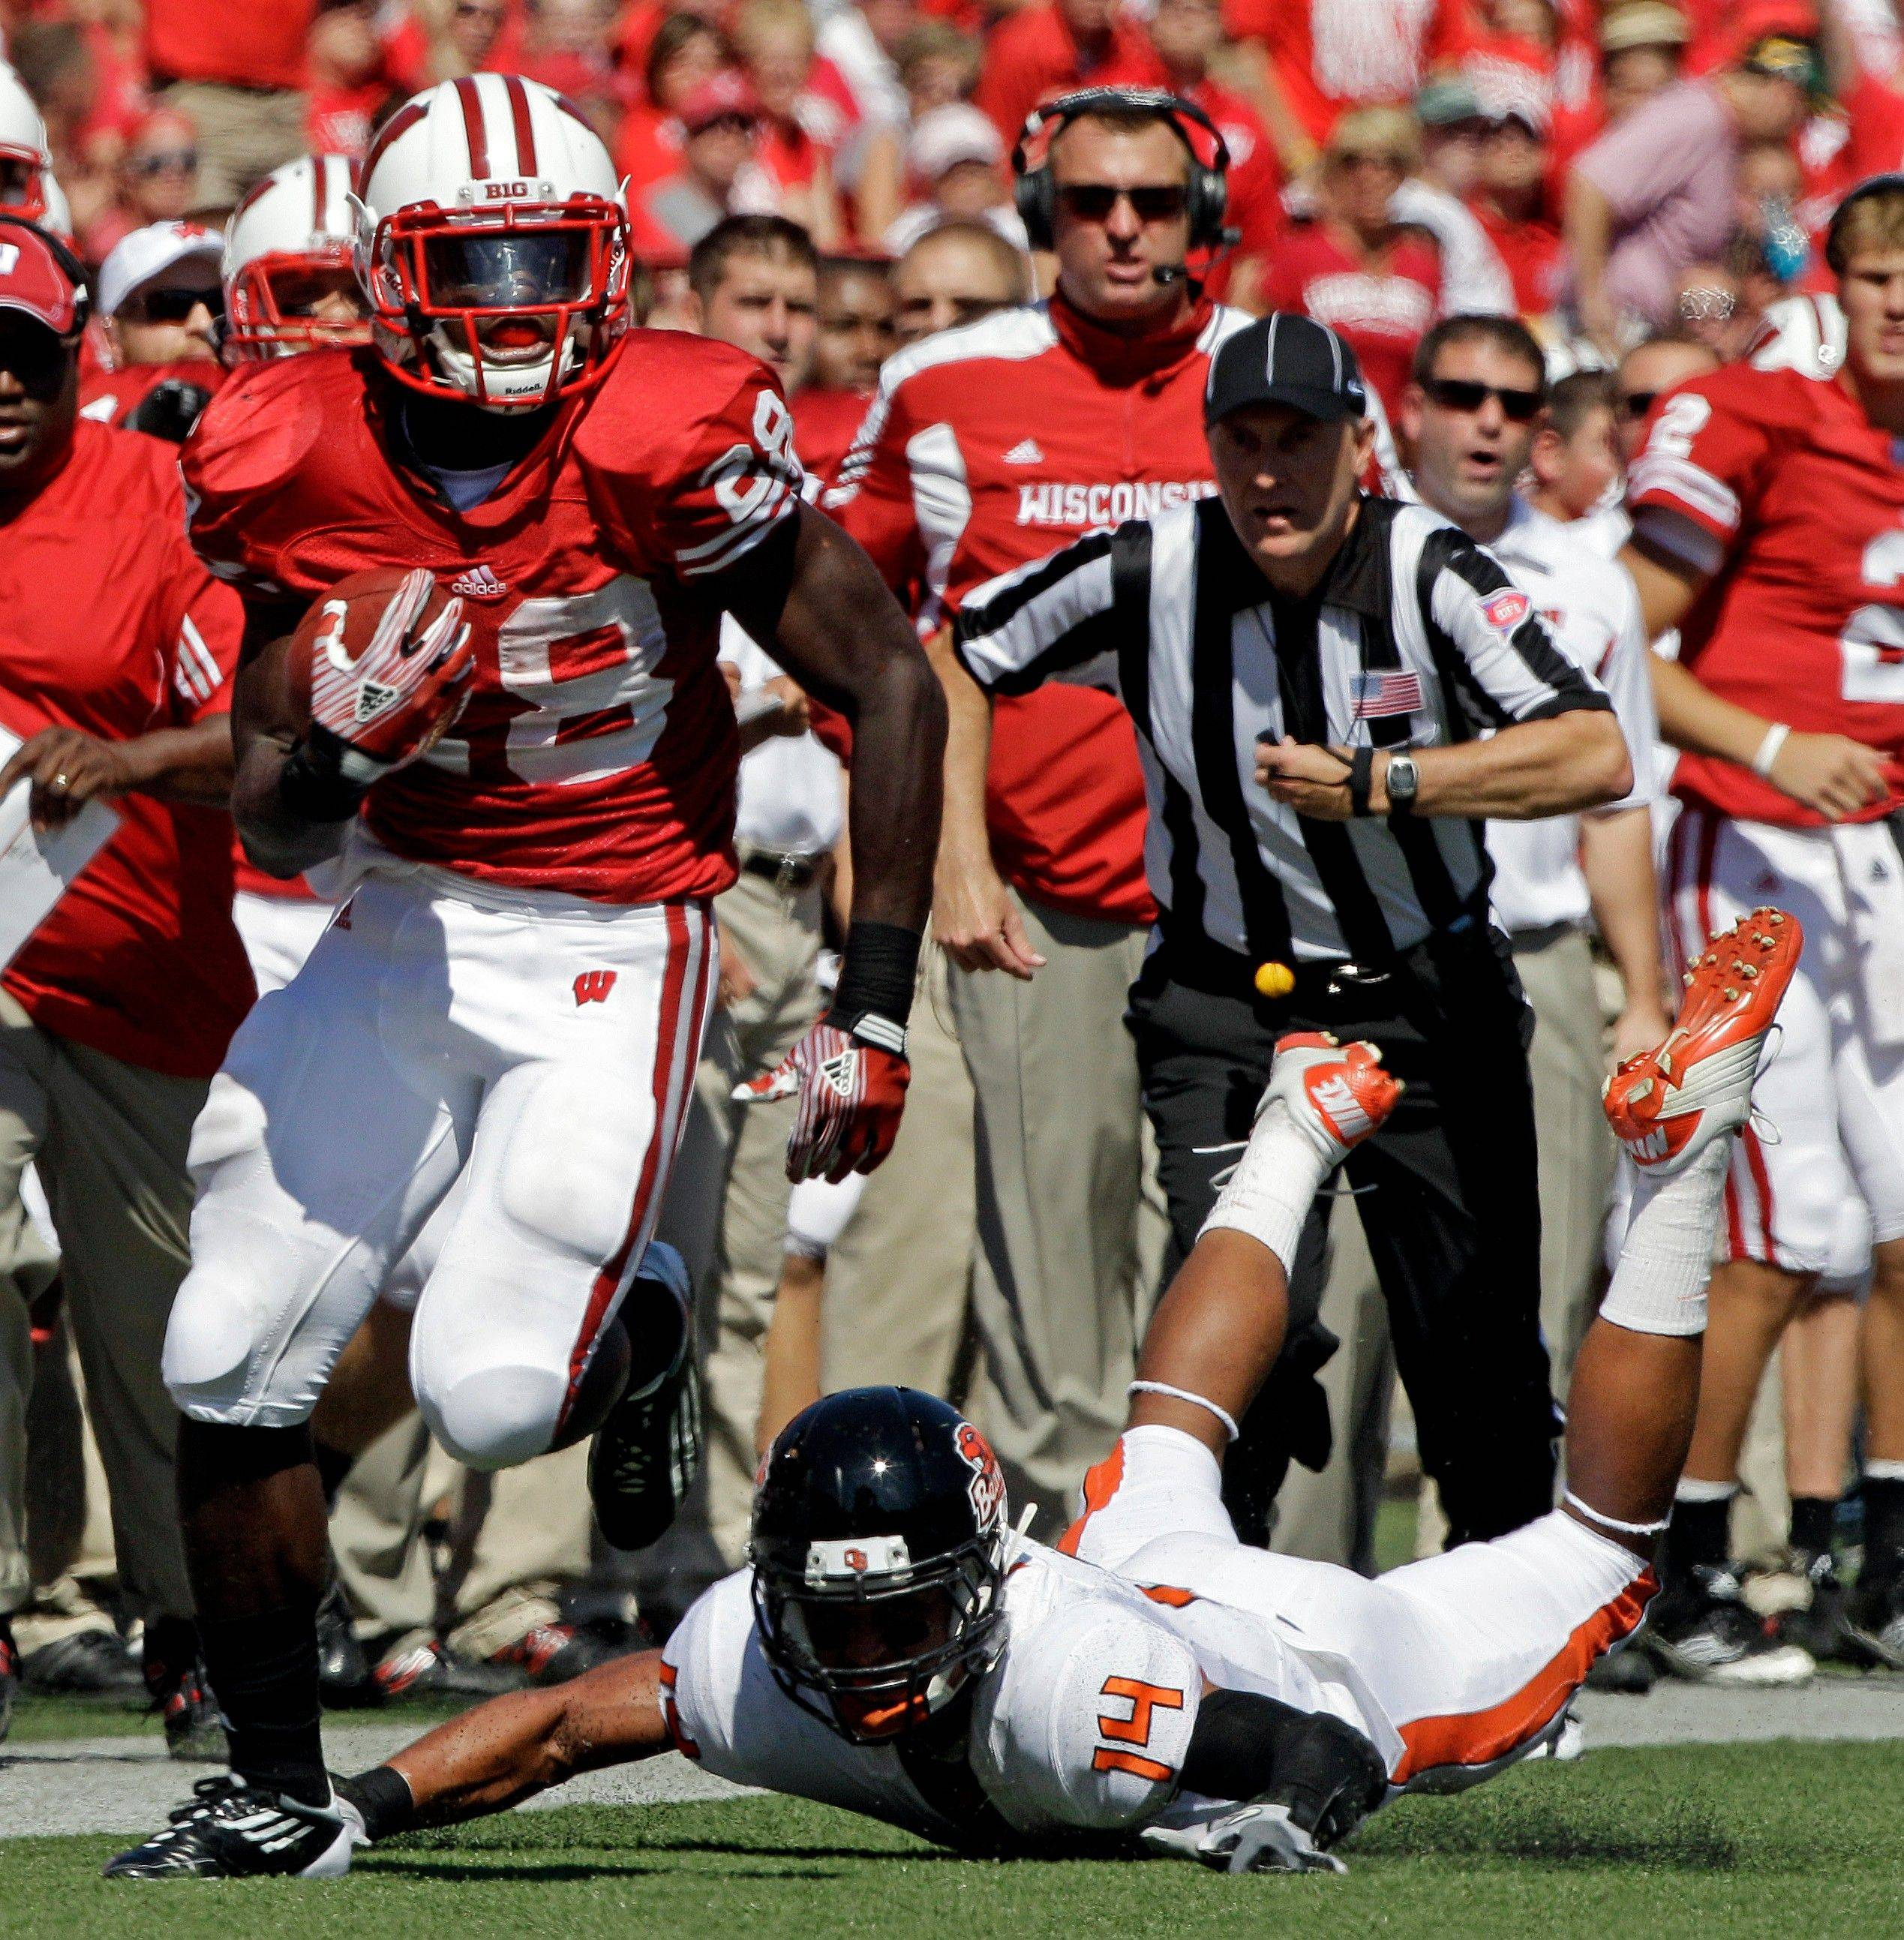 Wisconsin's Montee Ball runs past Oregon State's Jordan Poyer during the first half Saturday in Madison. Wisconsin beat Oregon State 35-0.